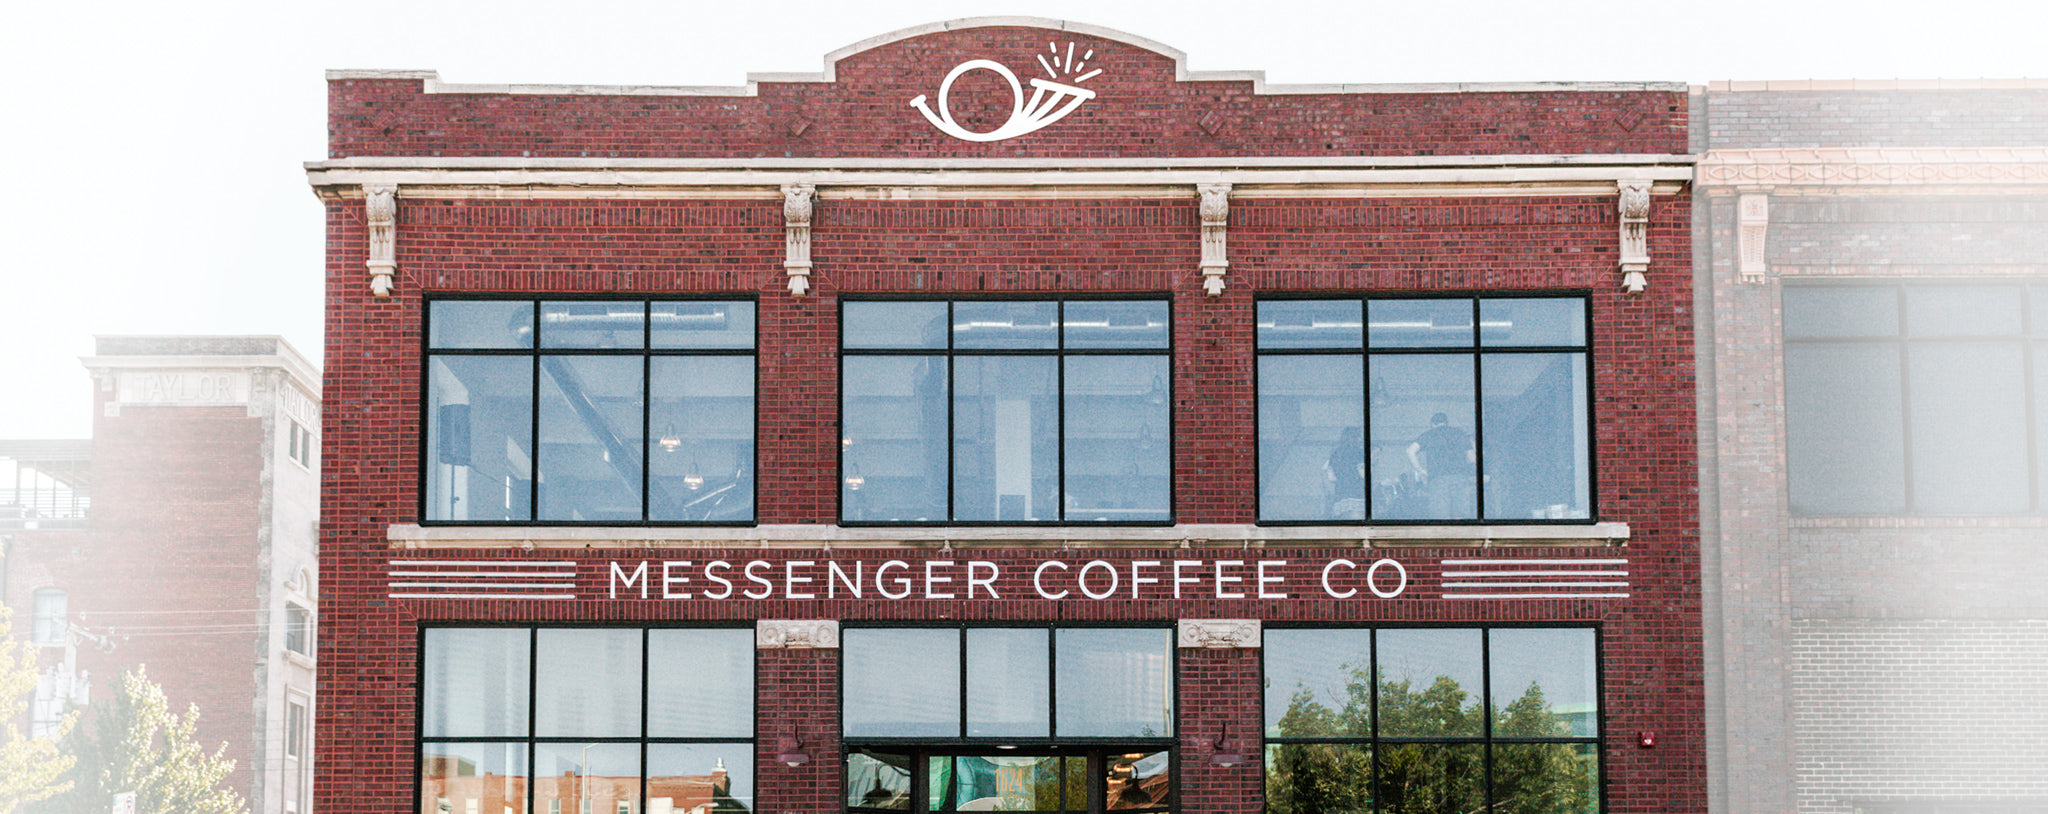 Messenger Cafe at 1624 Grand Boulevard